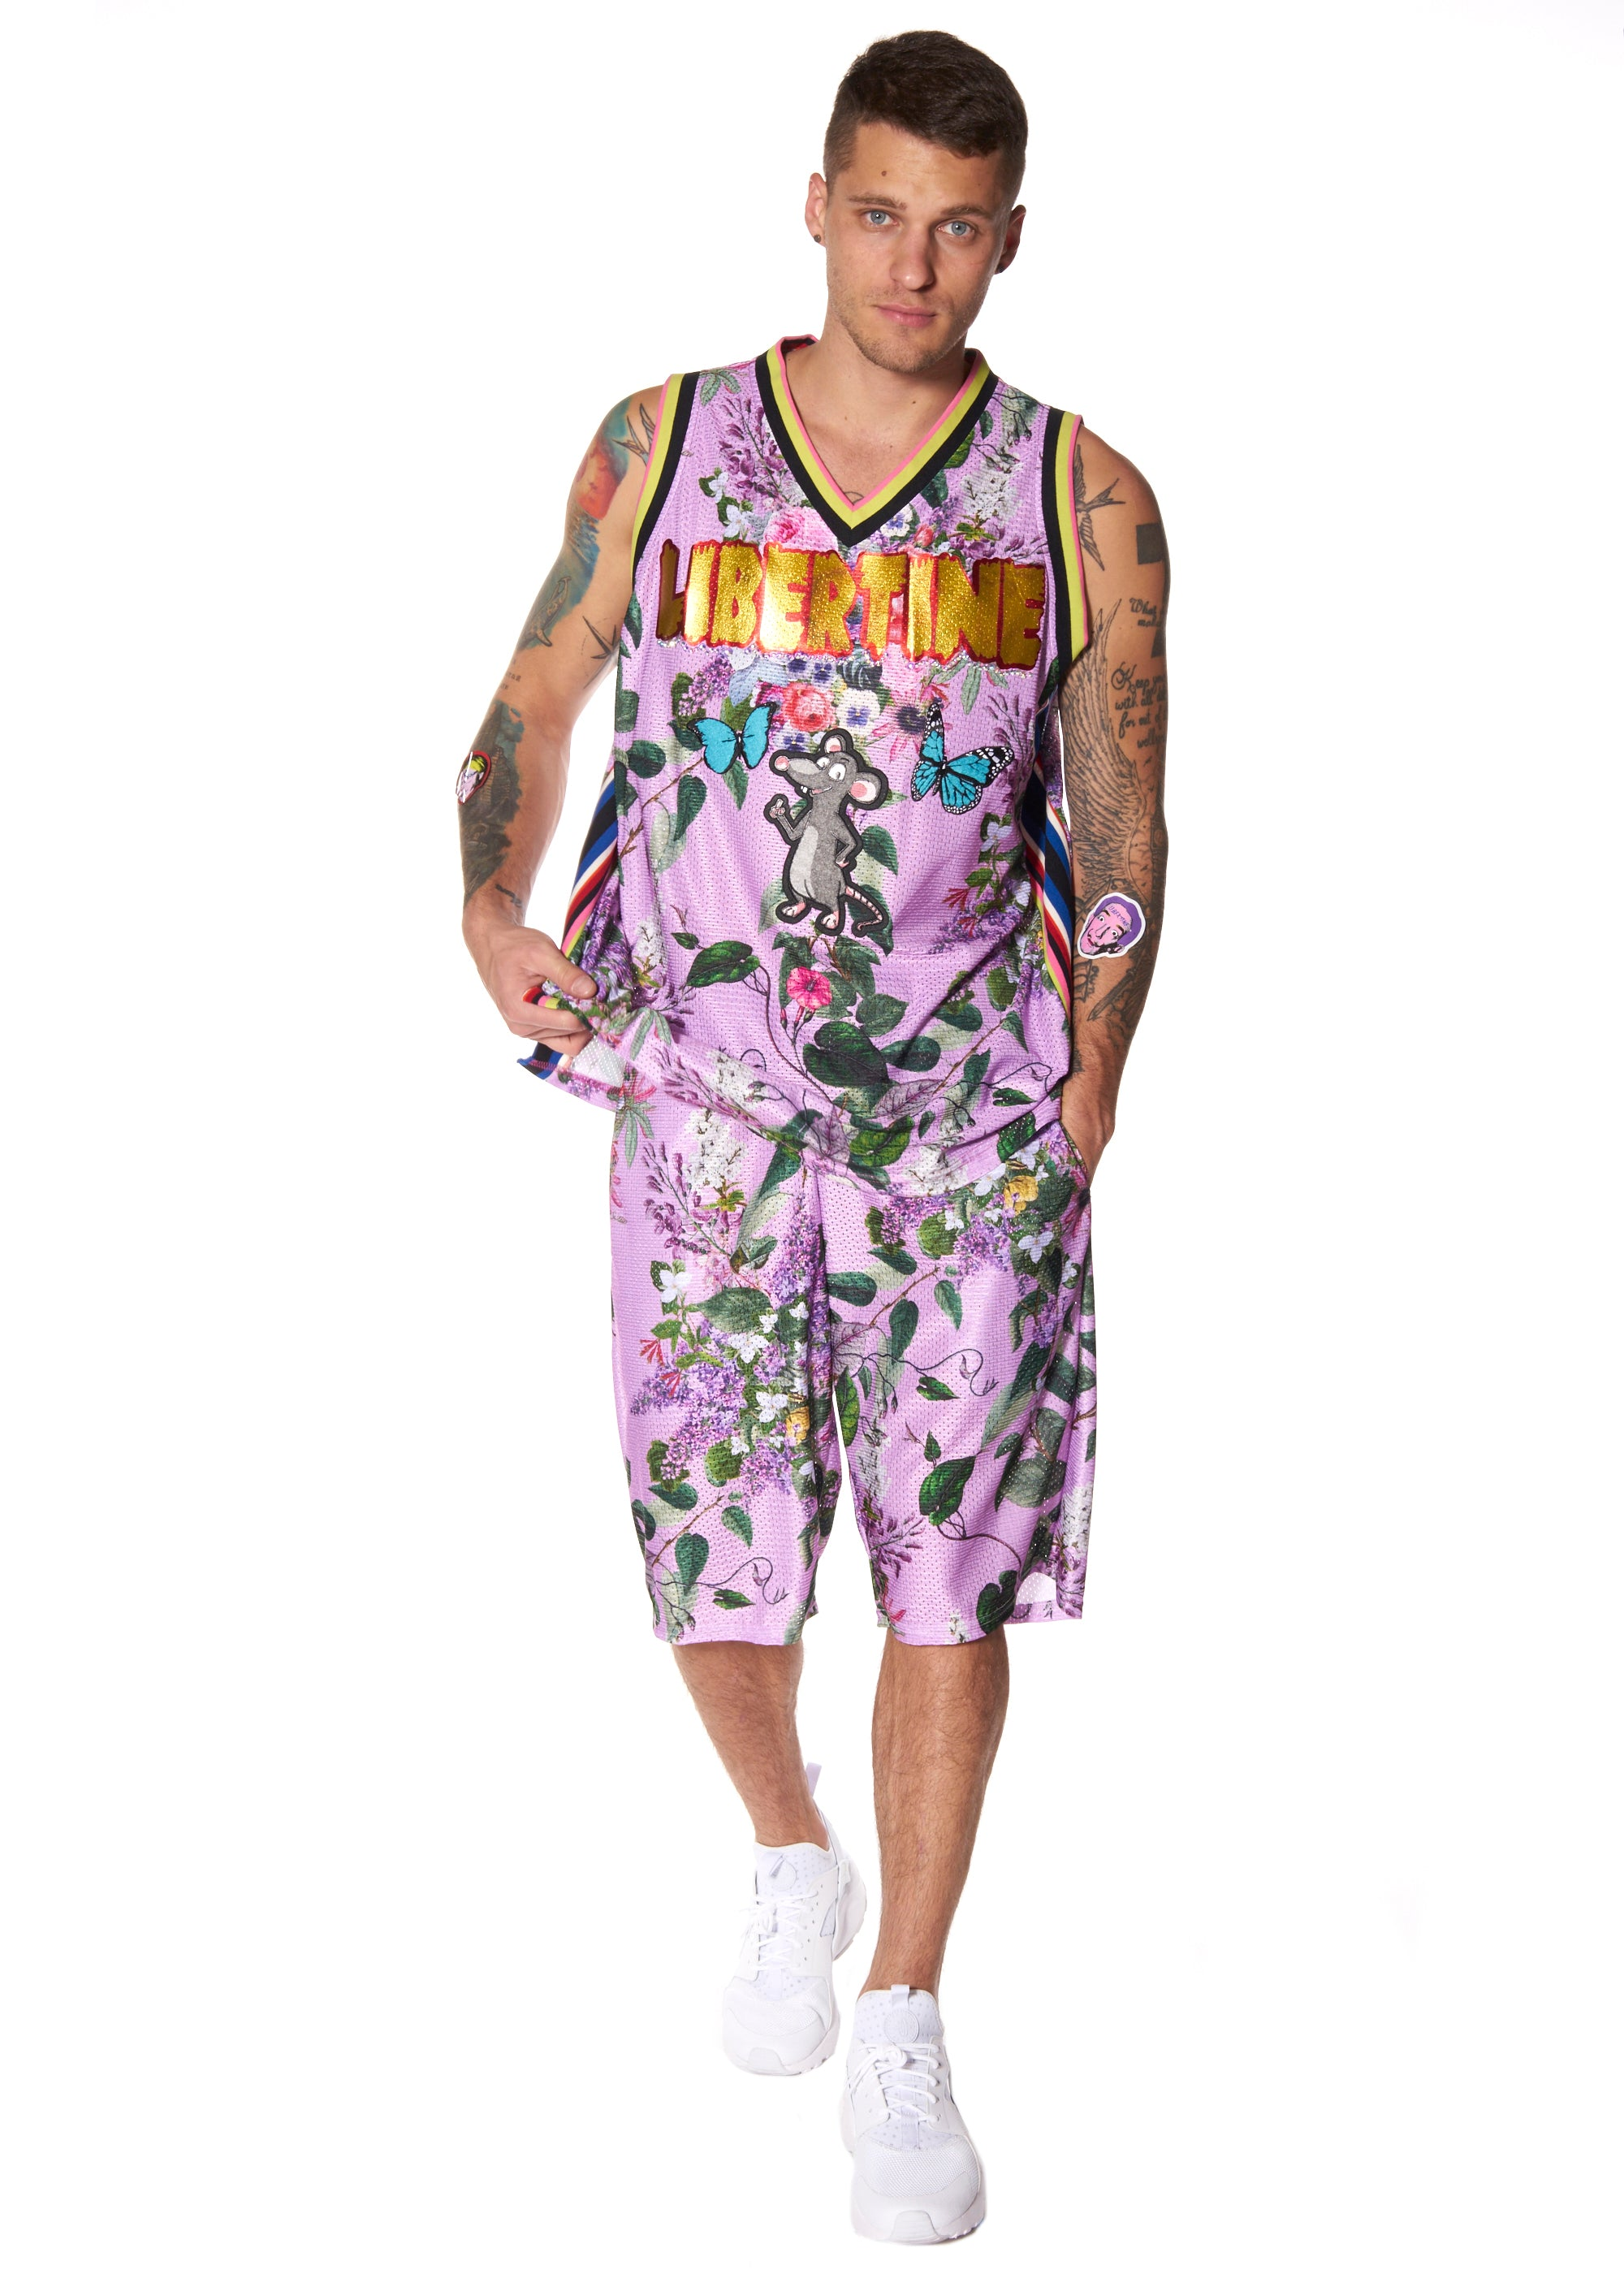 """HAMISH FLORAL"" MESH BASKETBALL JERSEY WITH PATCHES - Men's Tops - Libertine"